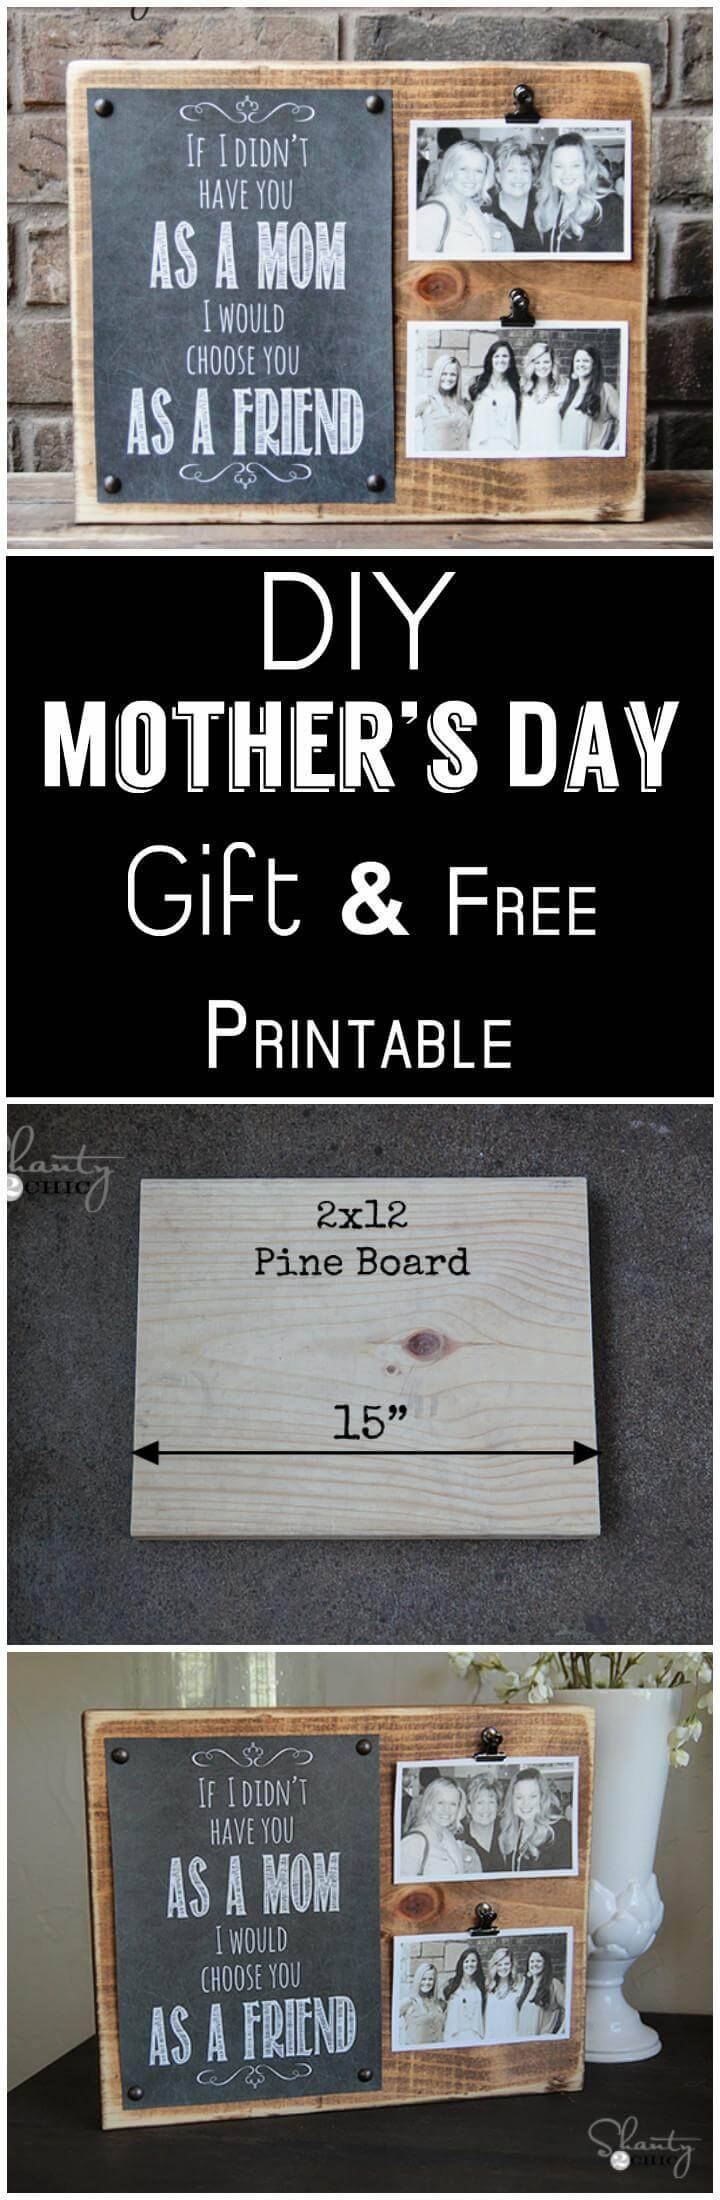 DIY Mother's Day gift and Free Printable